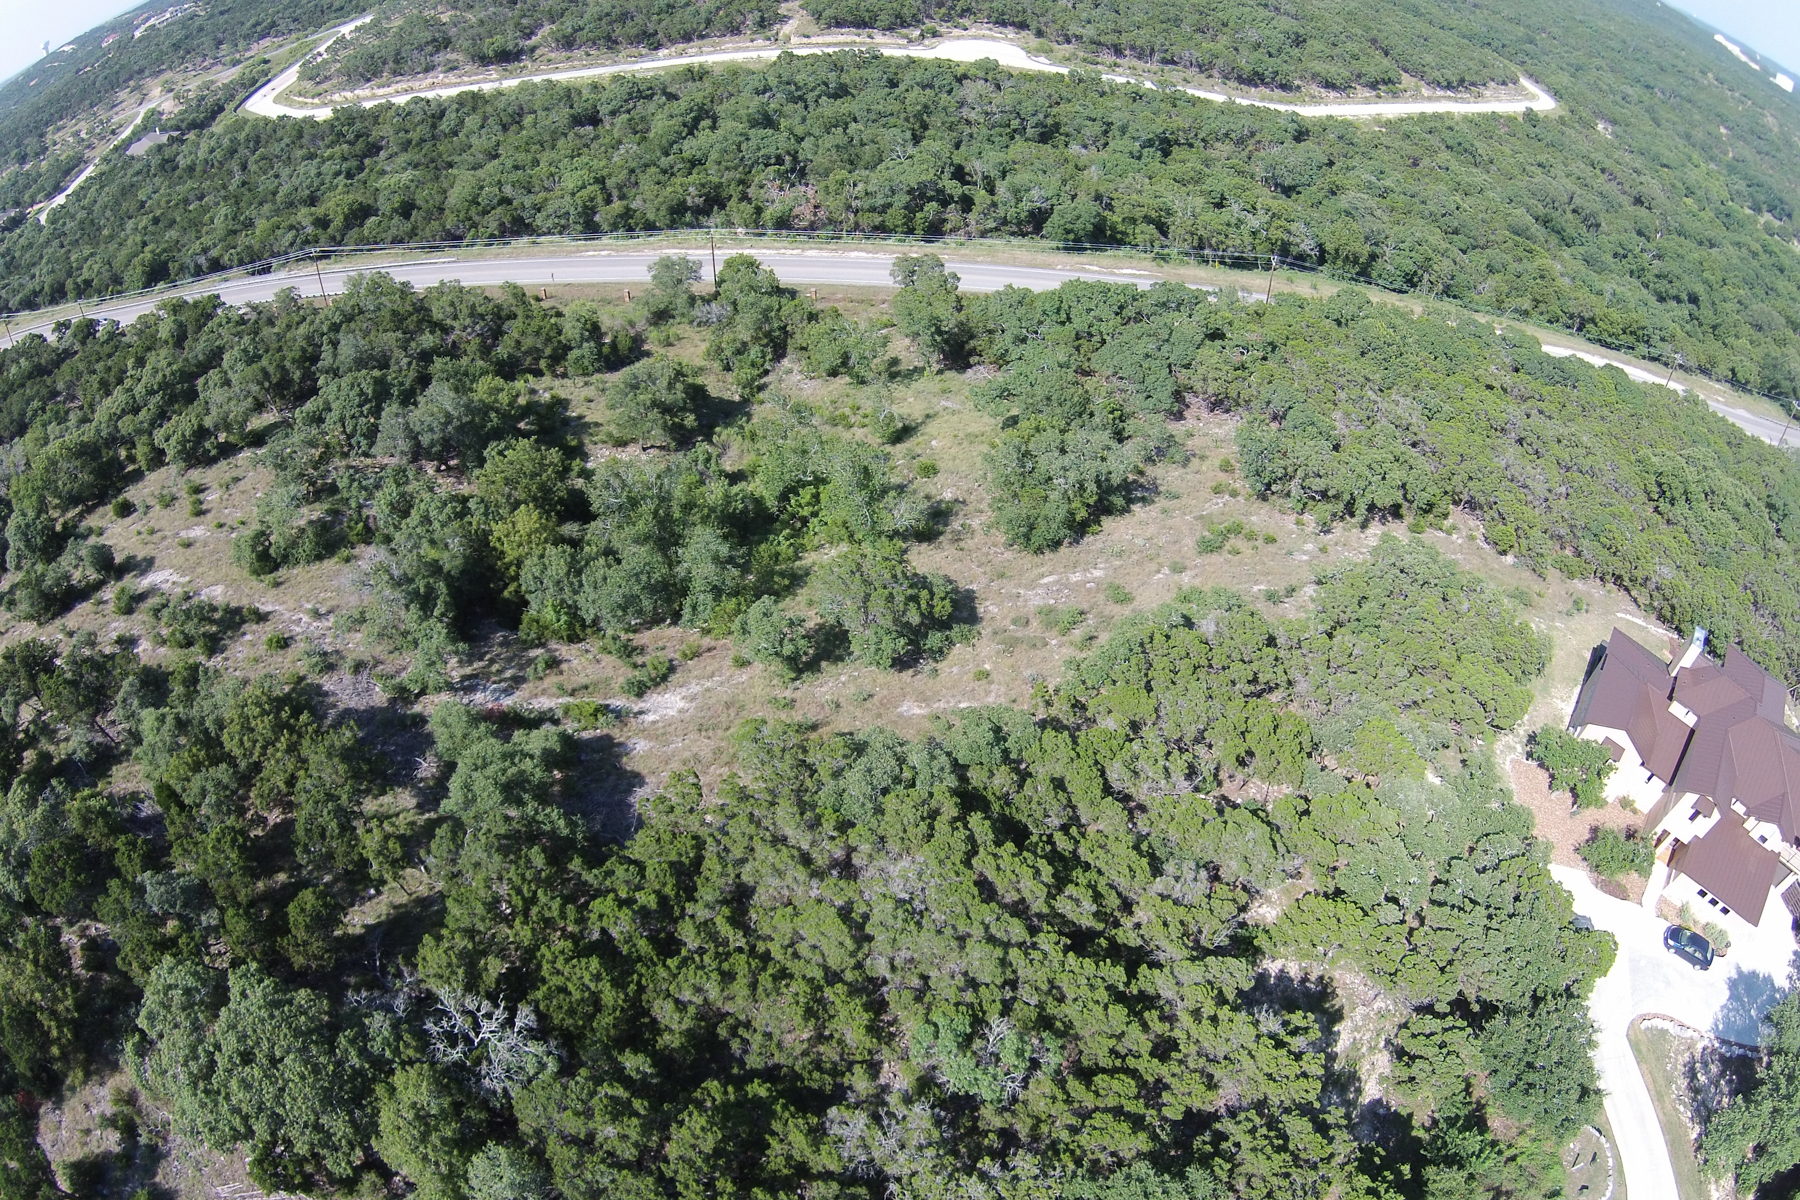 Terreno por un Venta en Large Cul-de-Sac Lot in Terra Mont 8702 Terra Gate San Antonio, Texas 78255 Estados Unidos